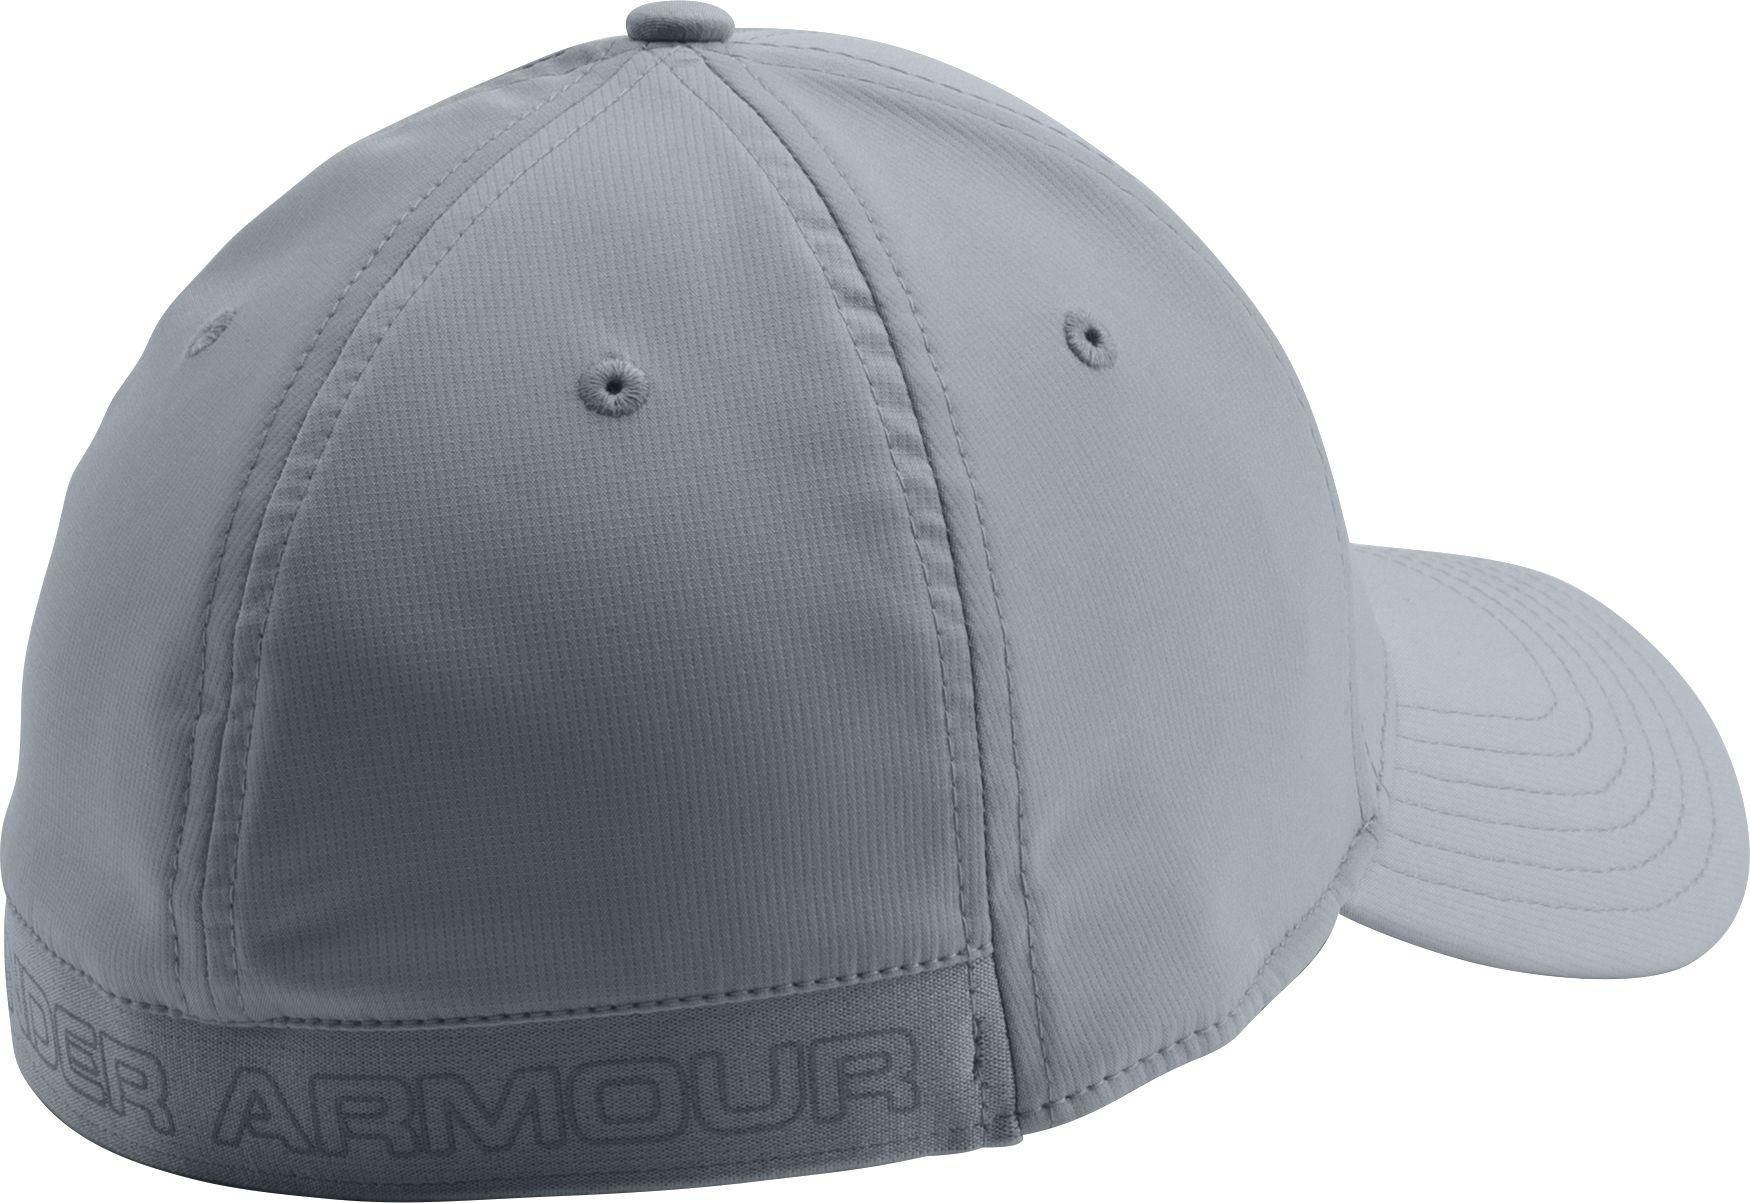 a73a5a7402bb2 Lyst - Under Armour Storm Headline Hat in Gray for Men